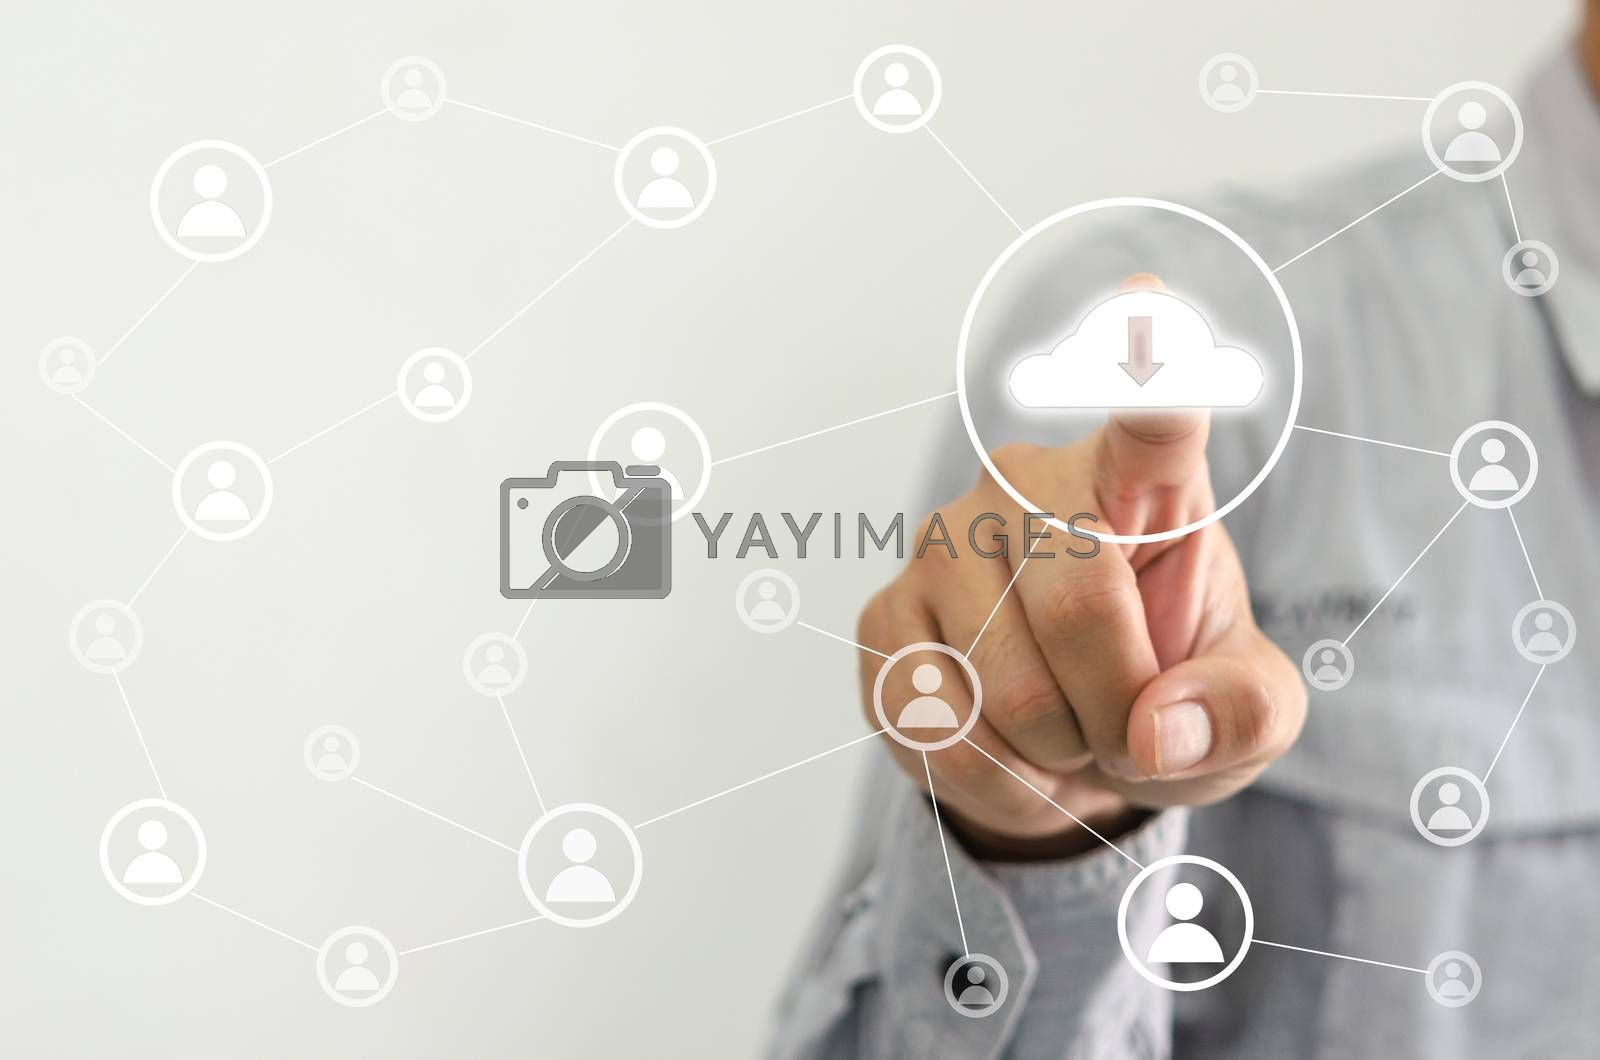 hand touching digital icon on touch screen.Network concept database.Internet and technology business.Administrative structure and human resource management